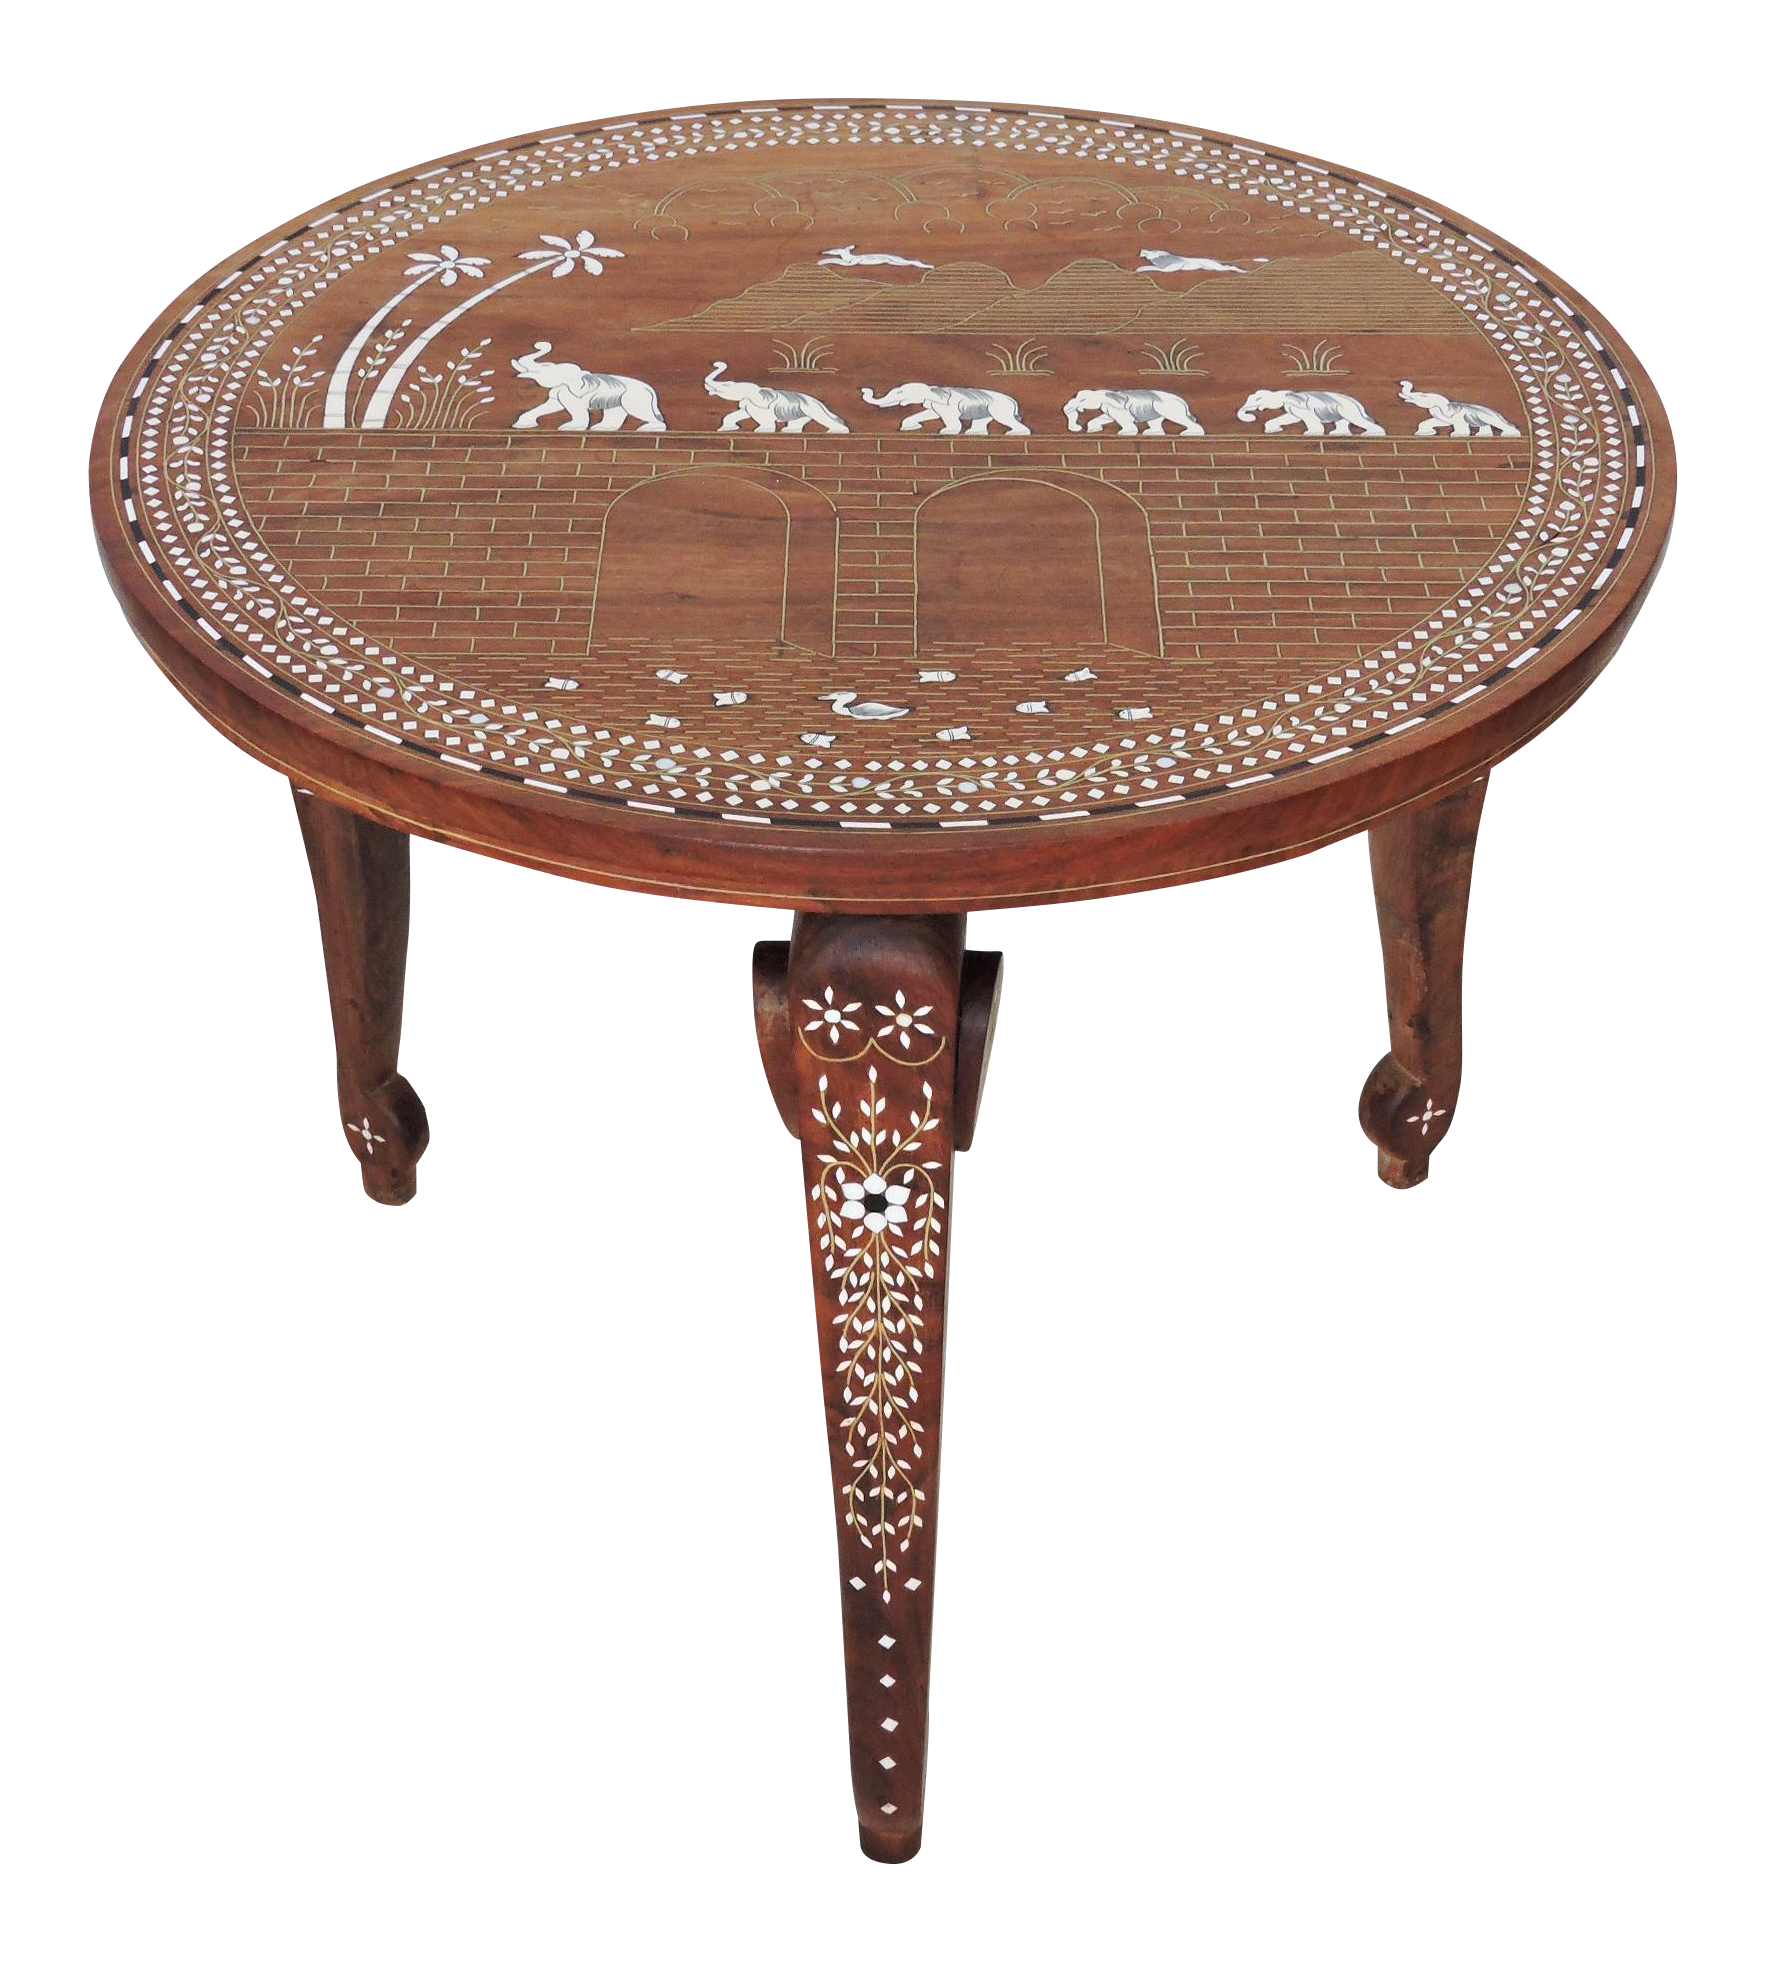 Please Feel Free To Contact Us Directly If Interested In This Piece Inlaid Indian Elephant Caravan Table On Chairis Coffee Table Vintage Teak Wood Side Table